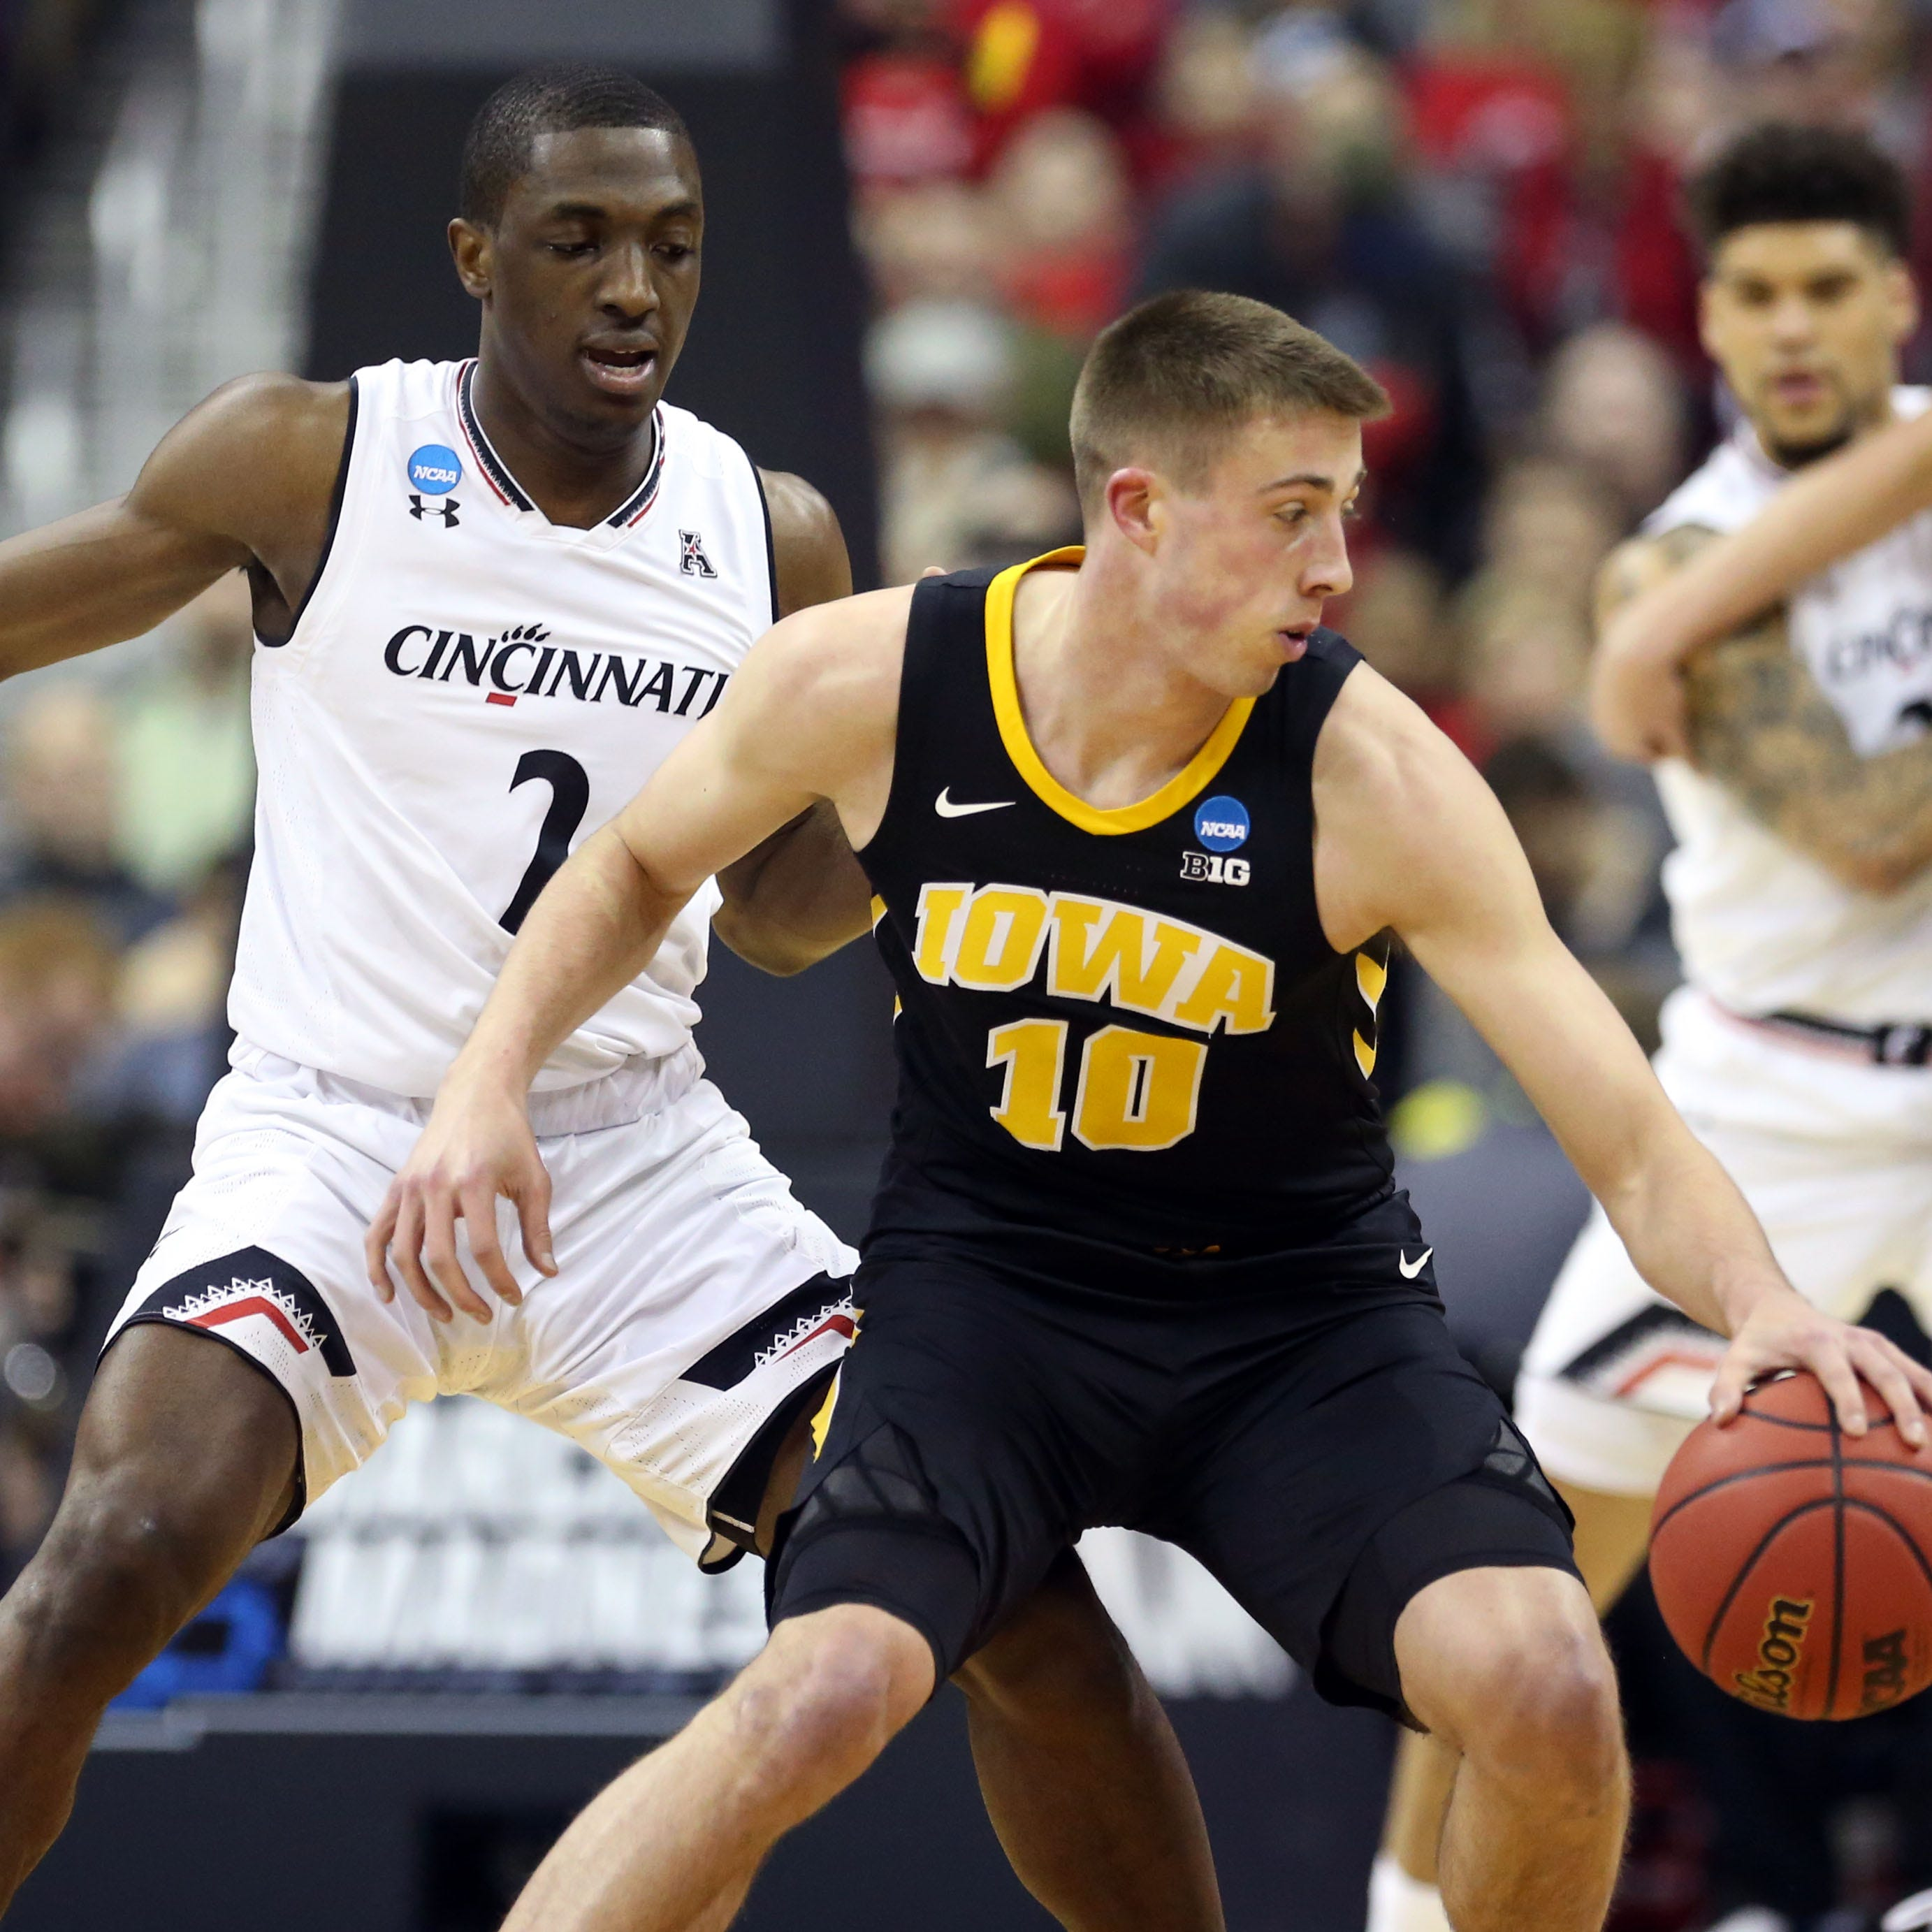 Hawkeyes storm back from early hole to thump Cincinnati in NCAA Tournament opener